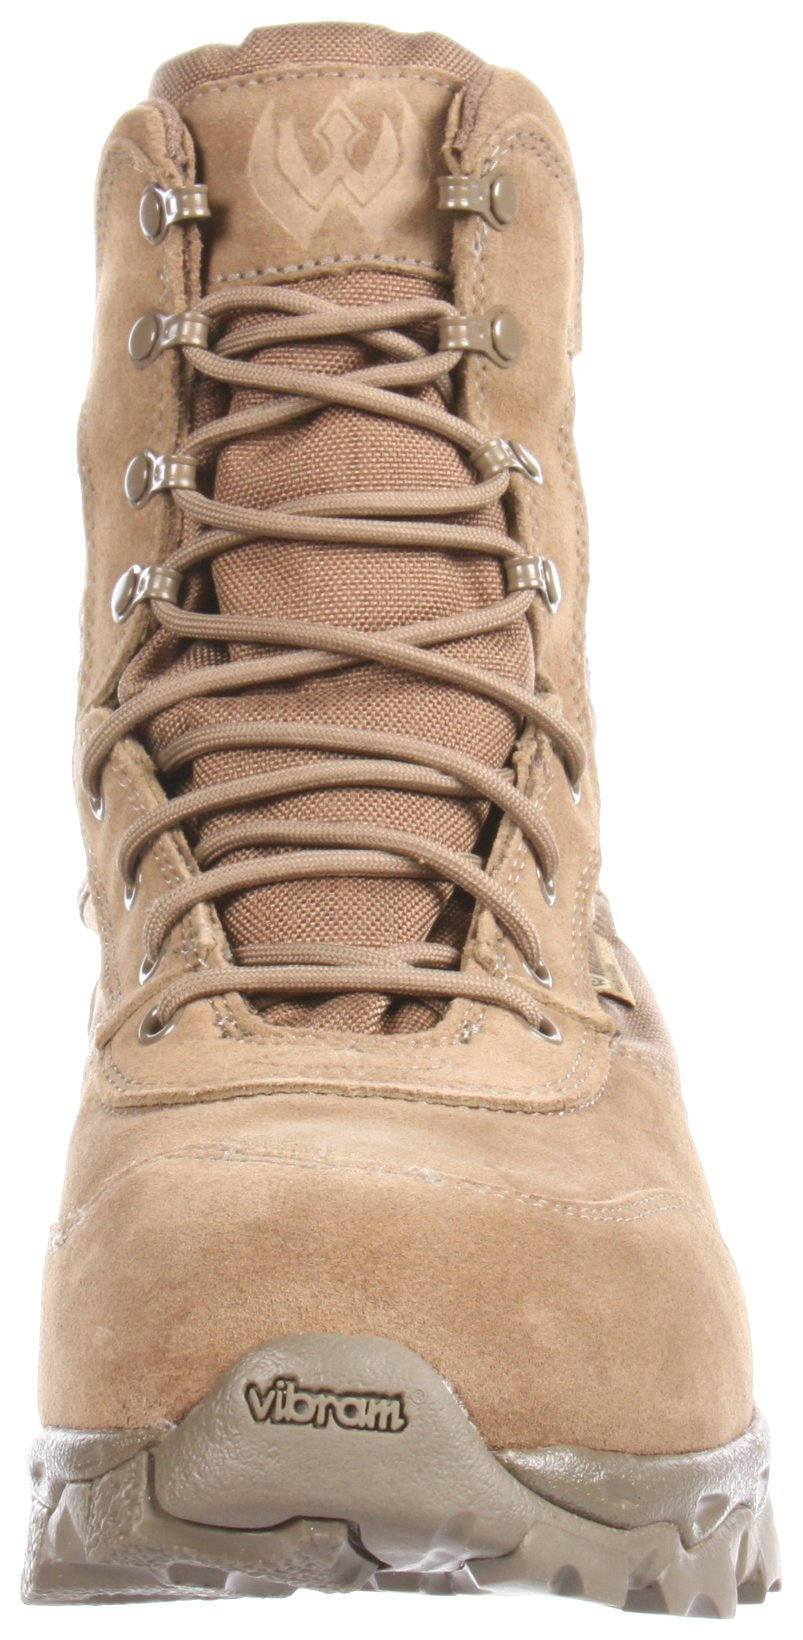 Desert Ops Boot Des Tan 5.5 M 17079 BLACKHAWK